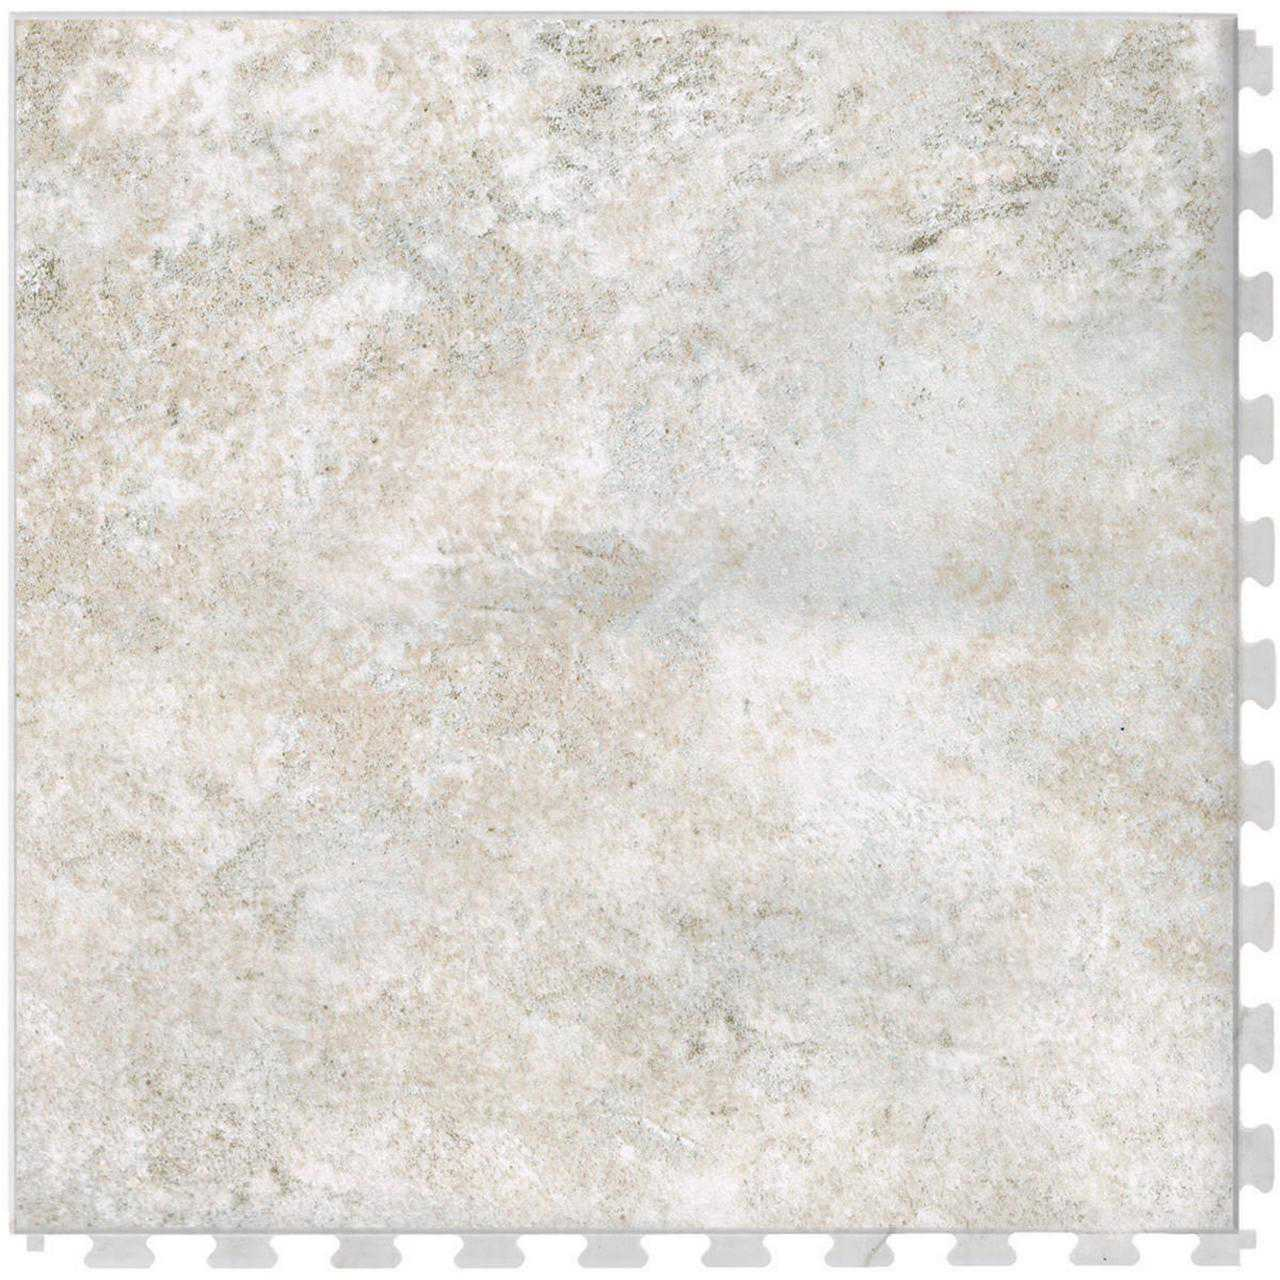 IT Tile ITNS570FS50 Fairstone Floor Tile, 20 in L x 20 in W x 5 mm T